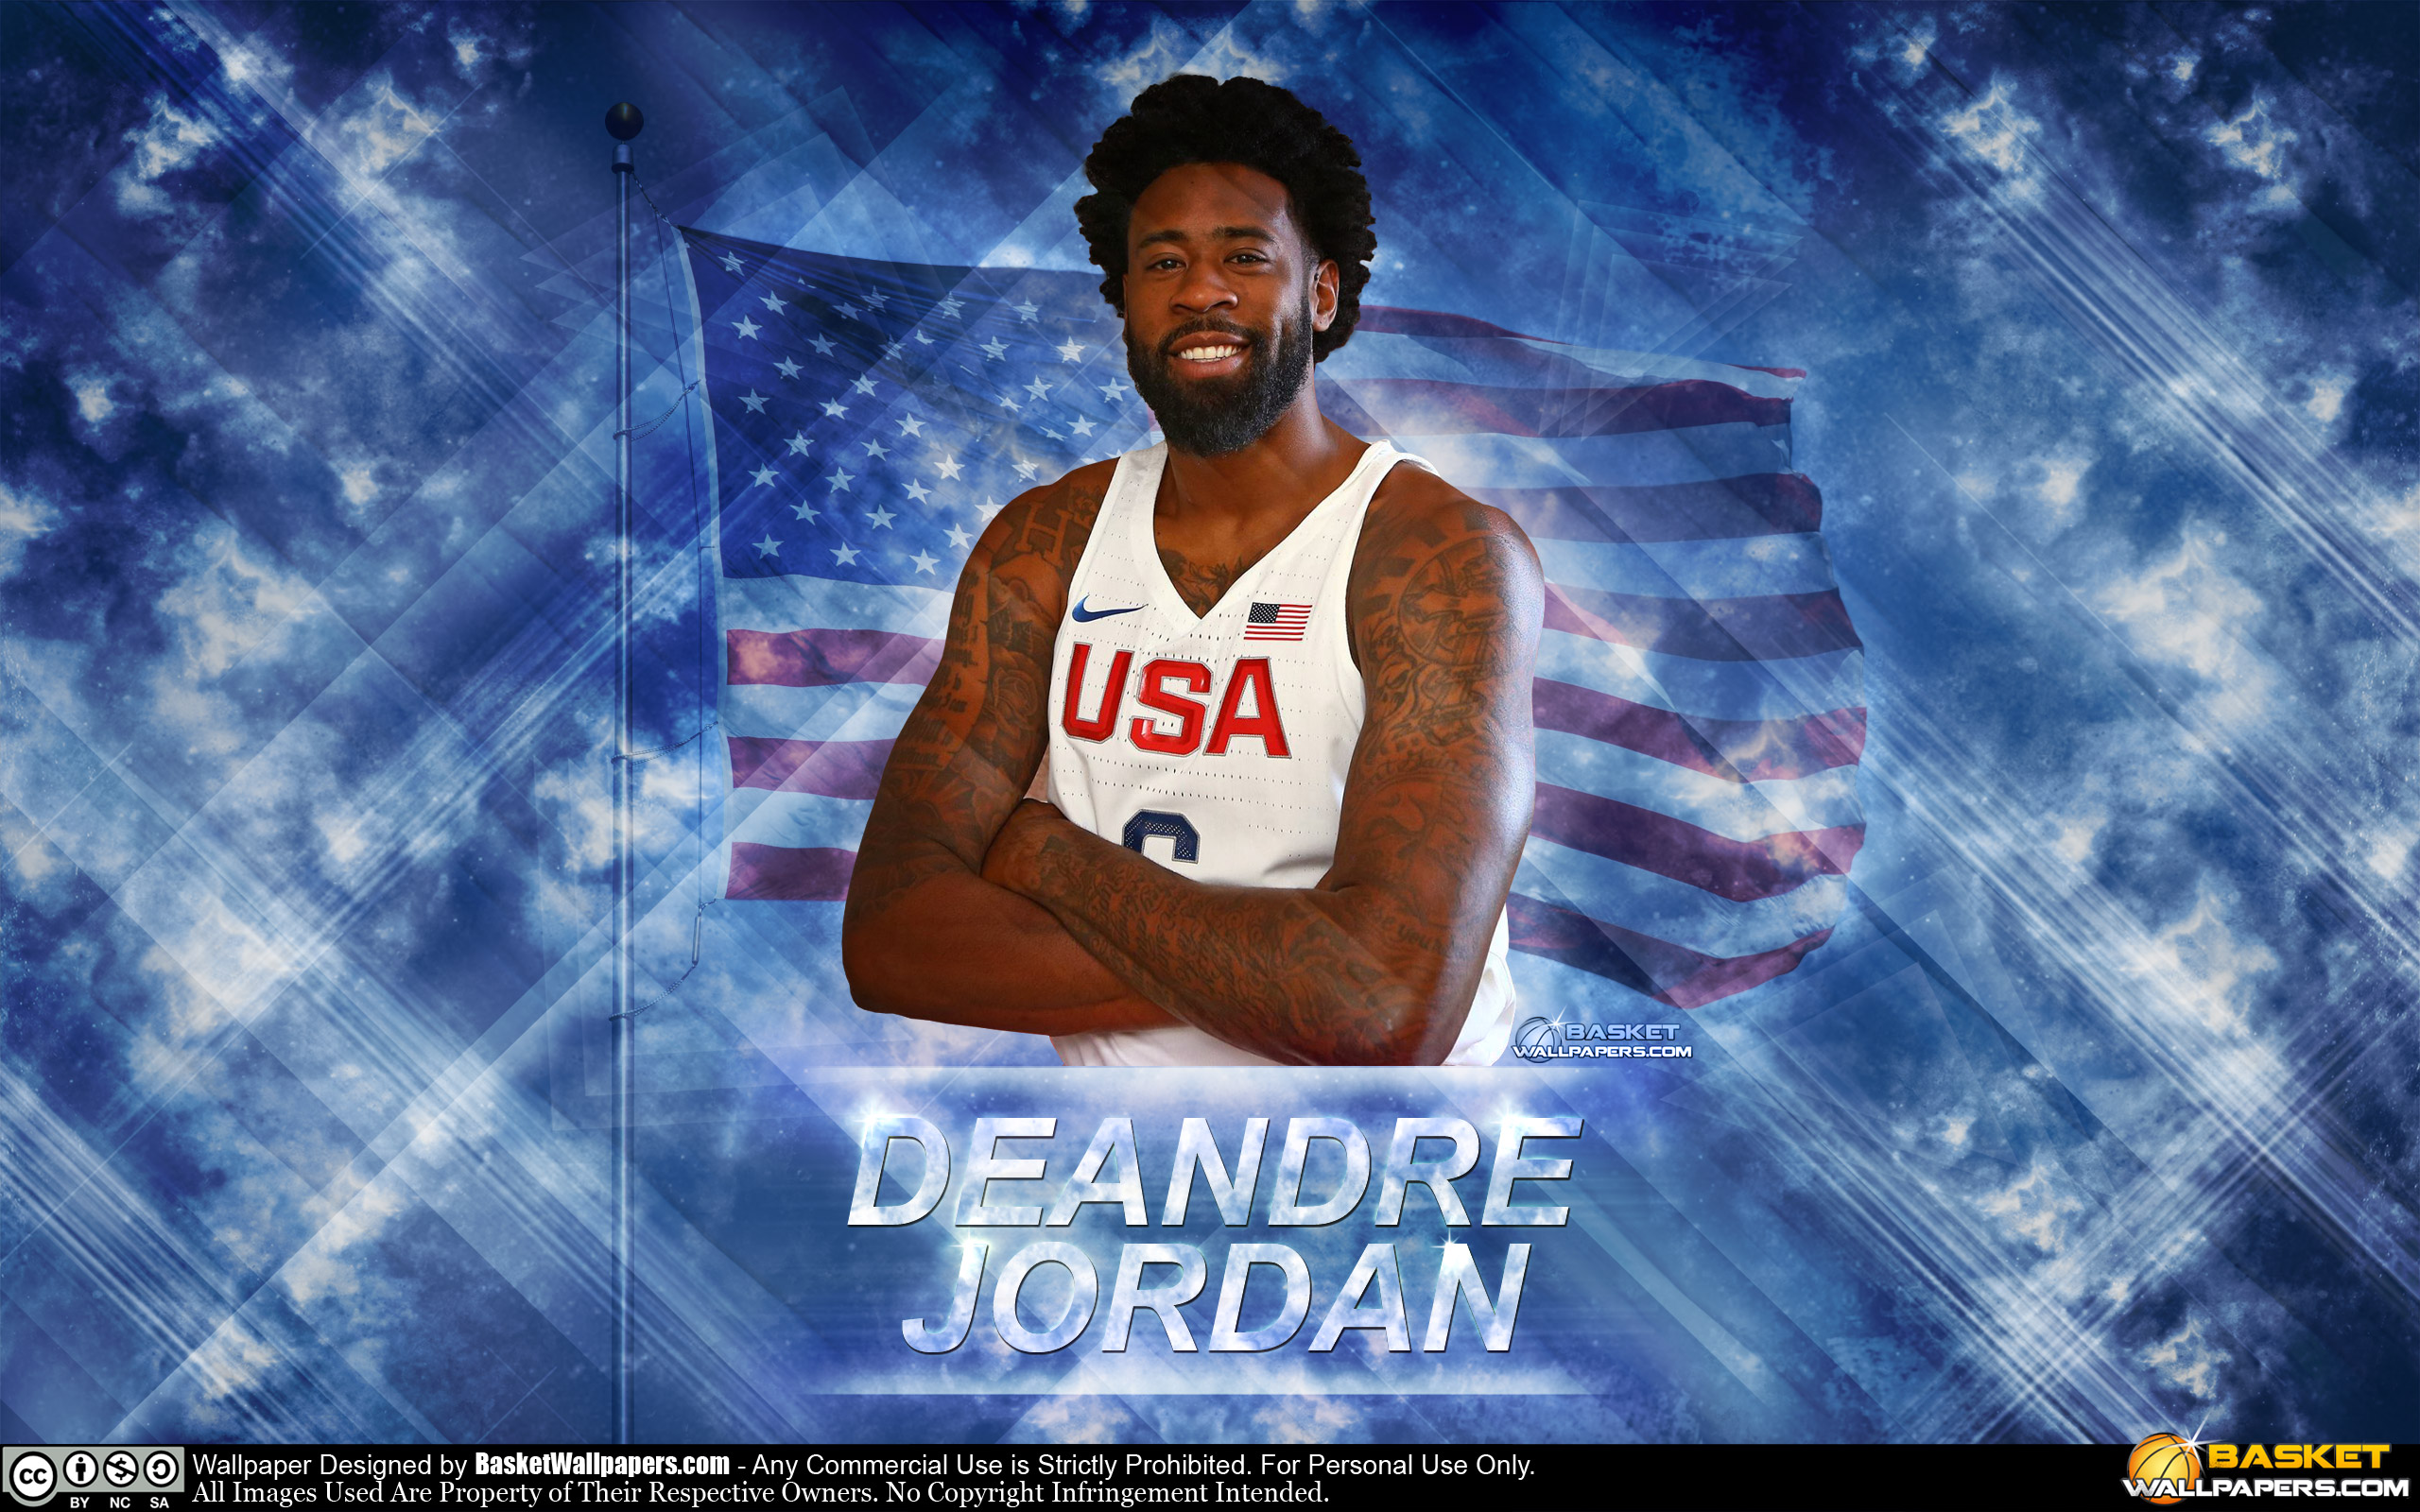 DeAndre Jordan USA 2016 Olympics Wallpaper